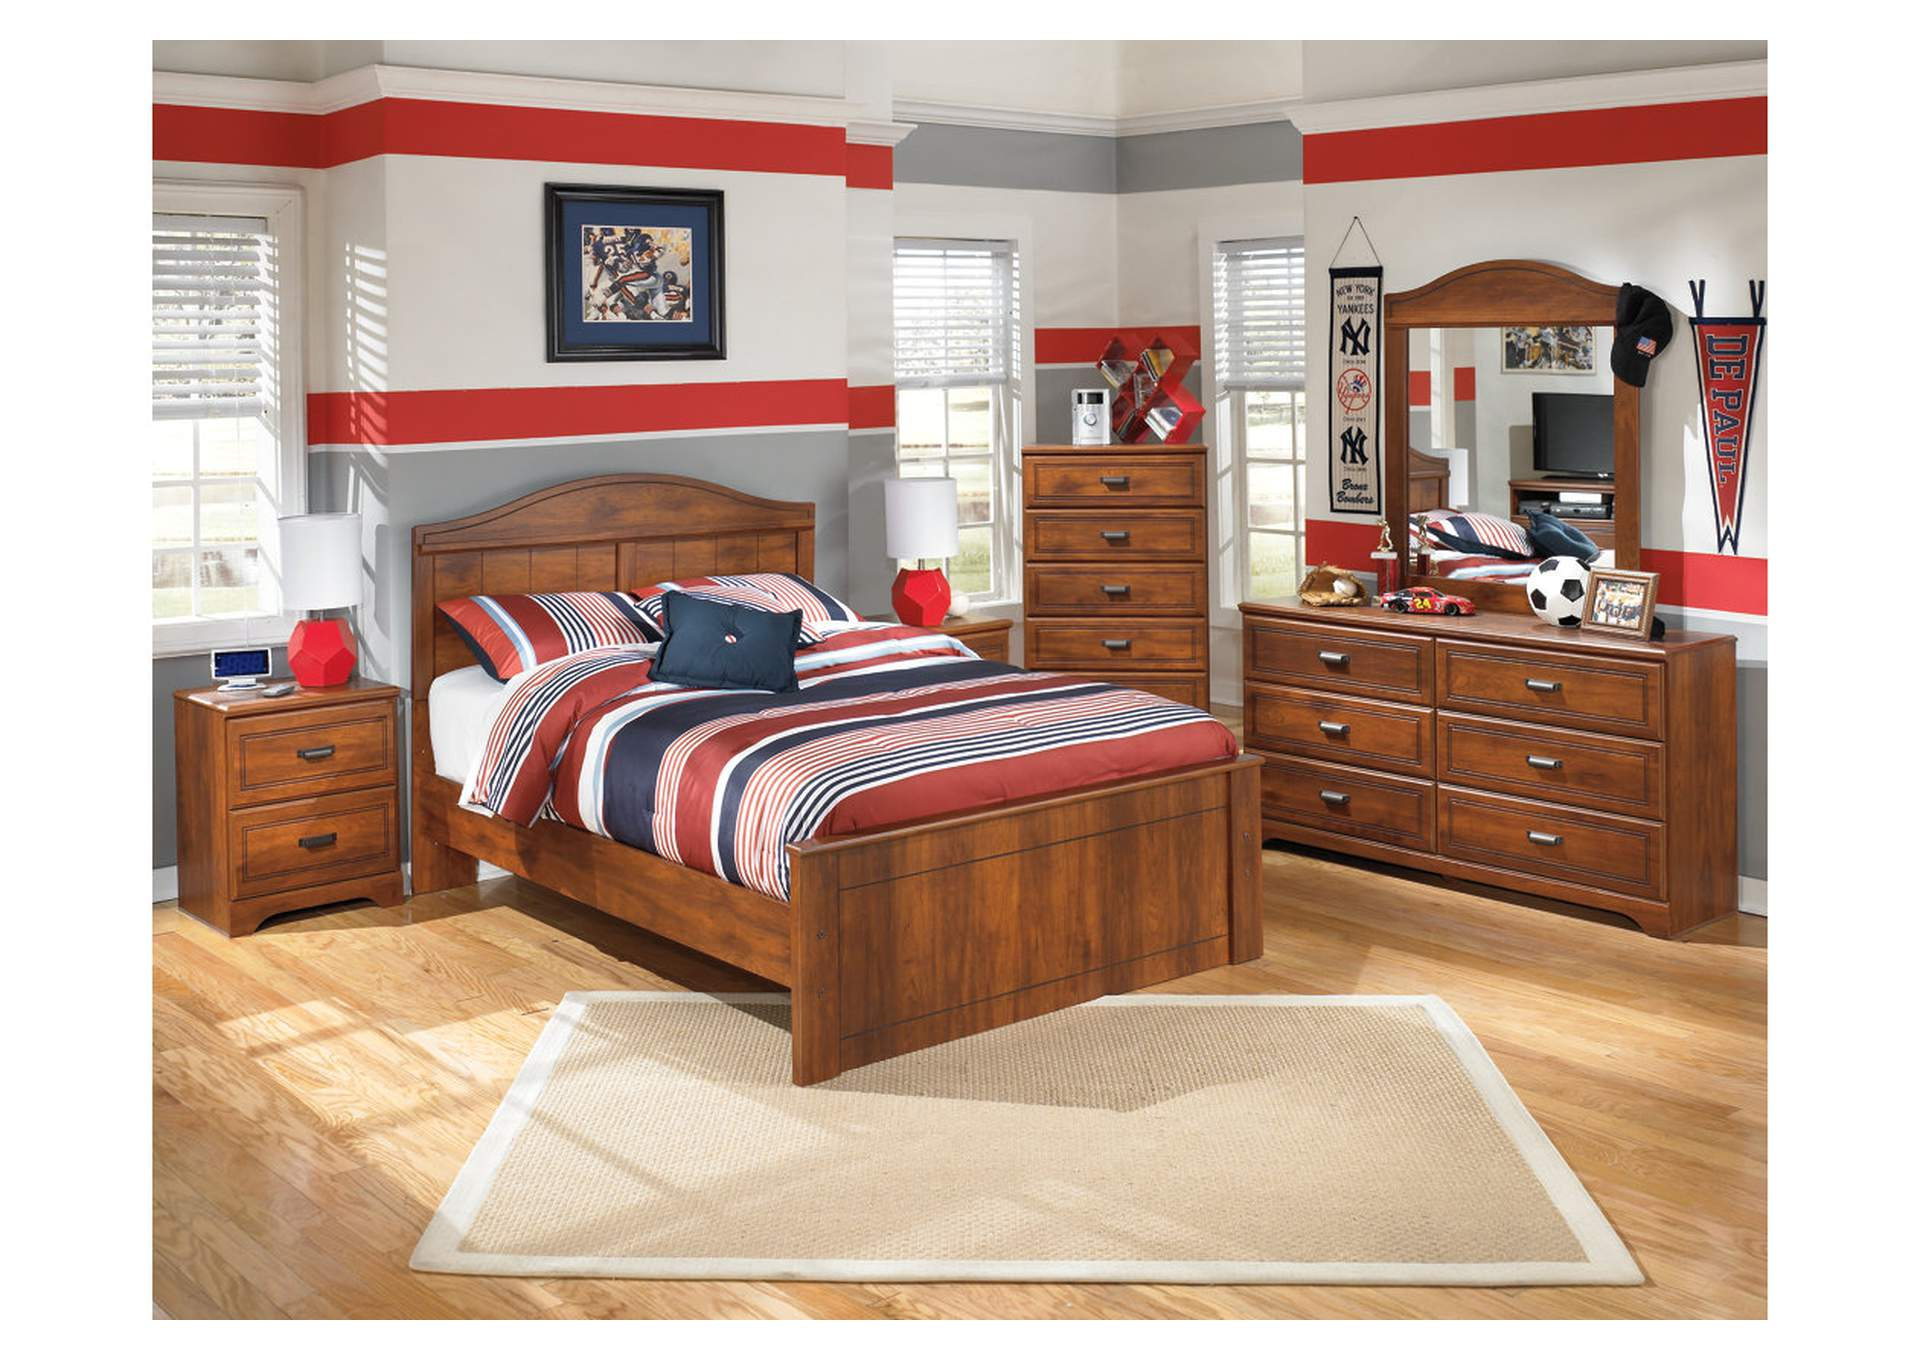 Barchan Full Panel Bed w/Dresser, Mirror, Drawer Chest & 2 Nightstands,Signature Design By Ashley